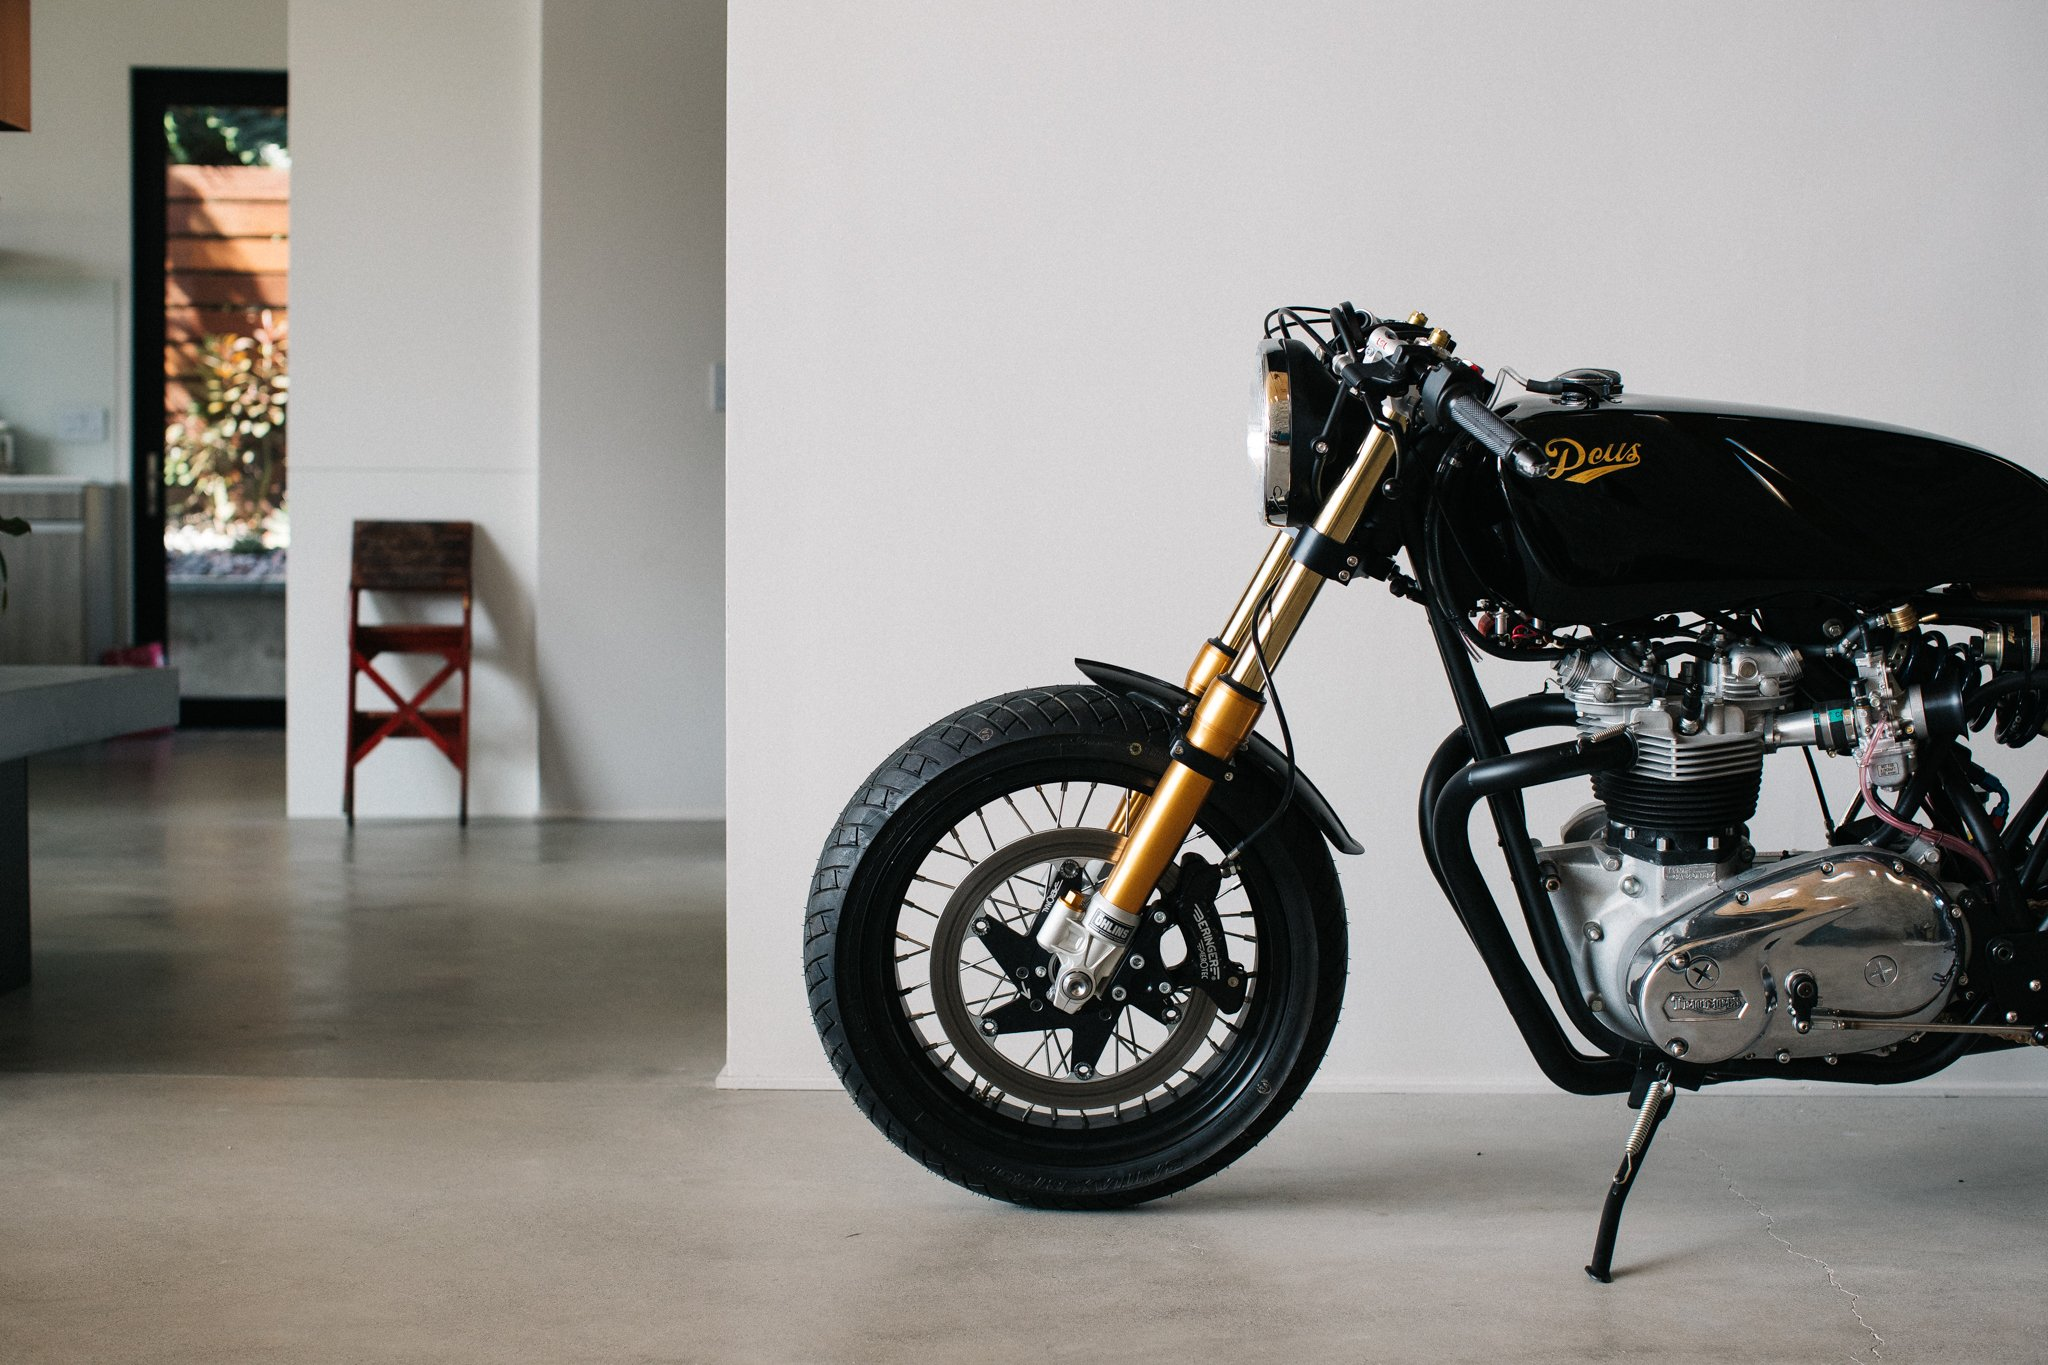 The Ttt Triumph T140 Cafe Racer